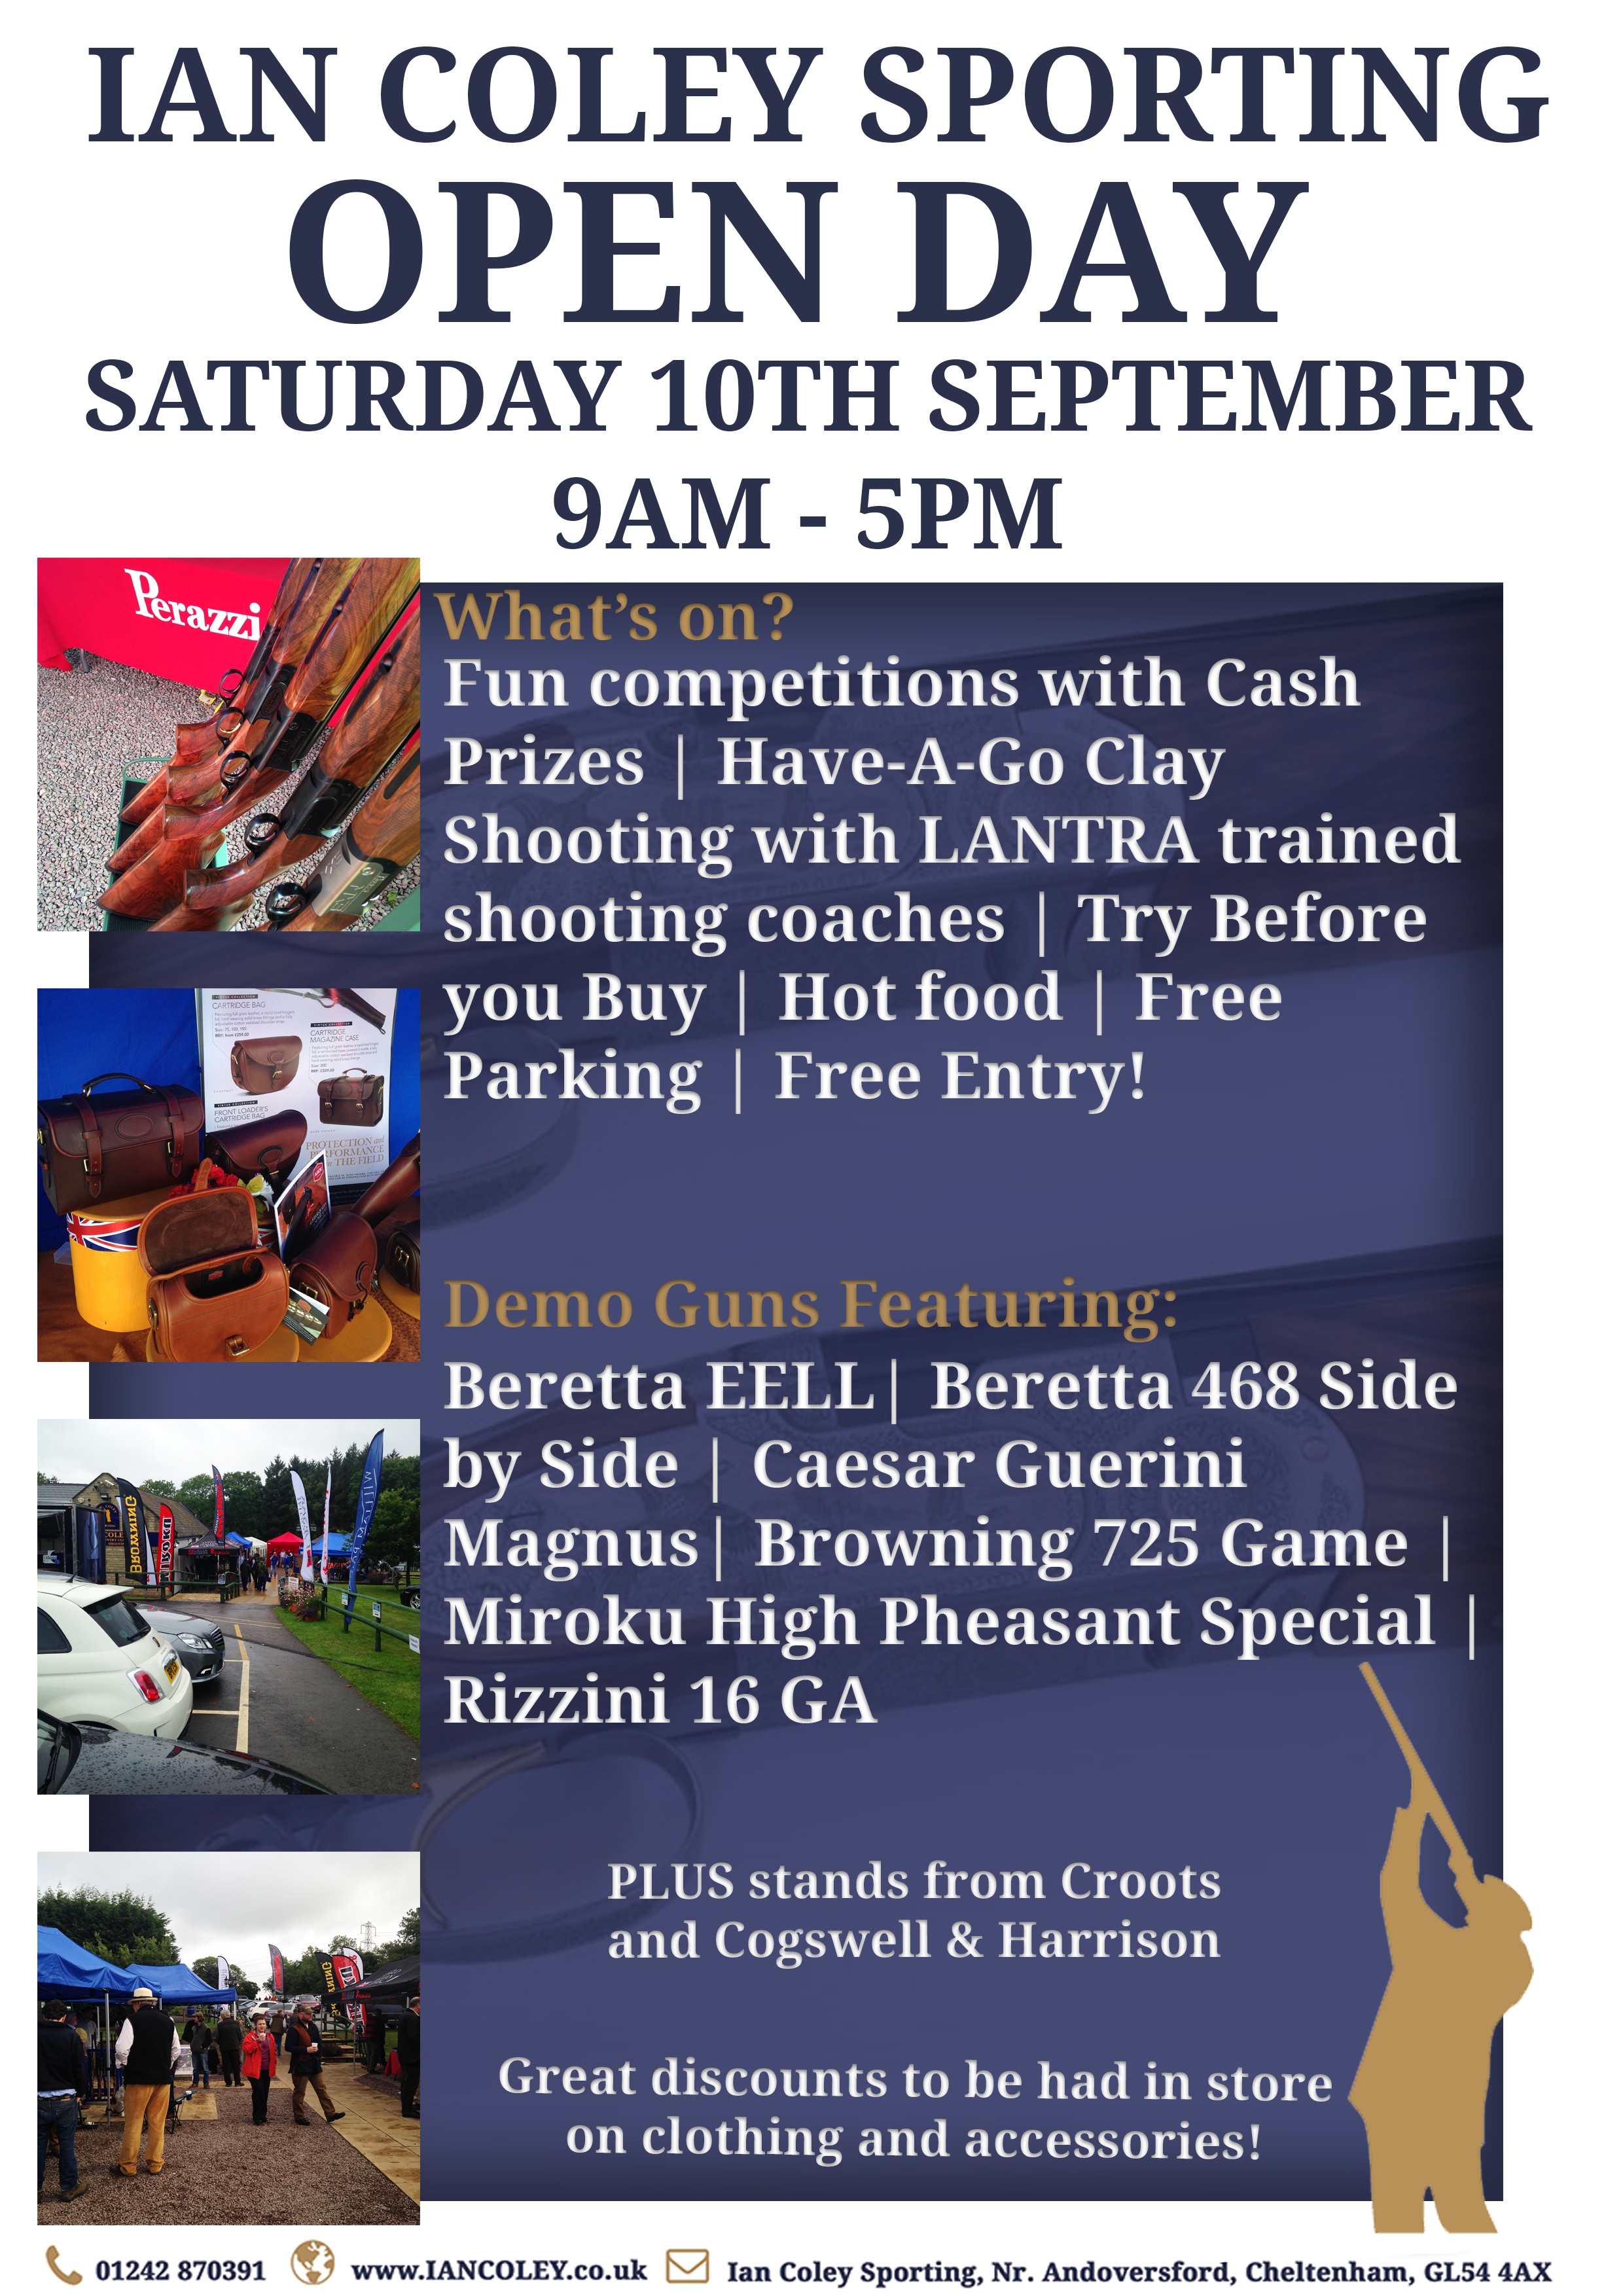 OPEN DAY – SATURDAY 10TH SEPTEMBER